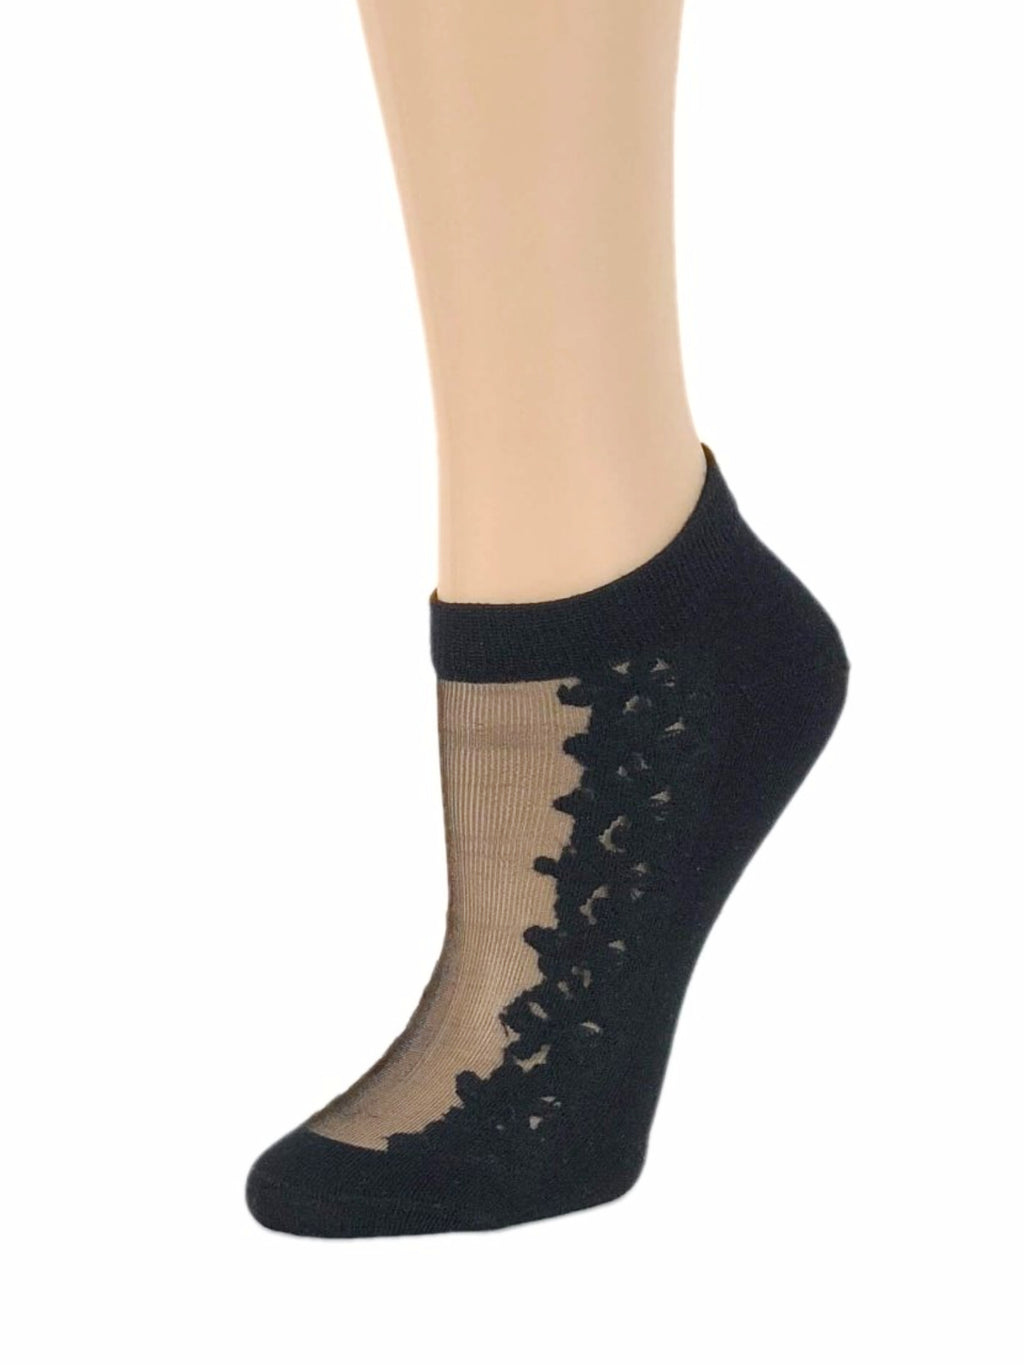 Gorgeous Black Patterned Ankle Sheer Socks - Global Trendz Fashion®